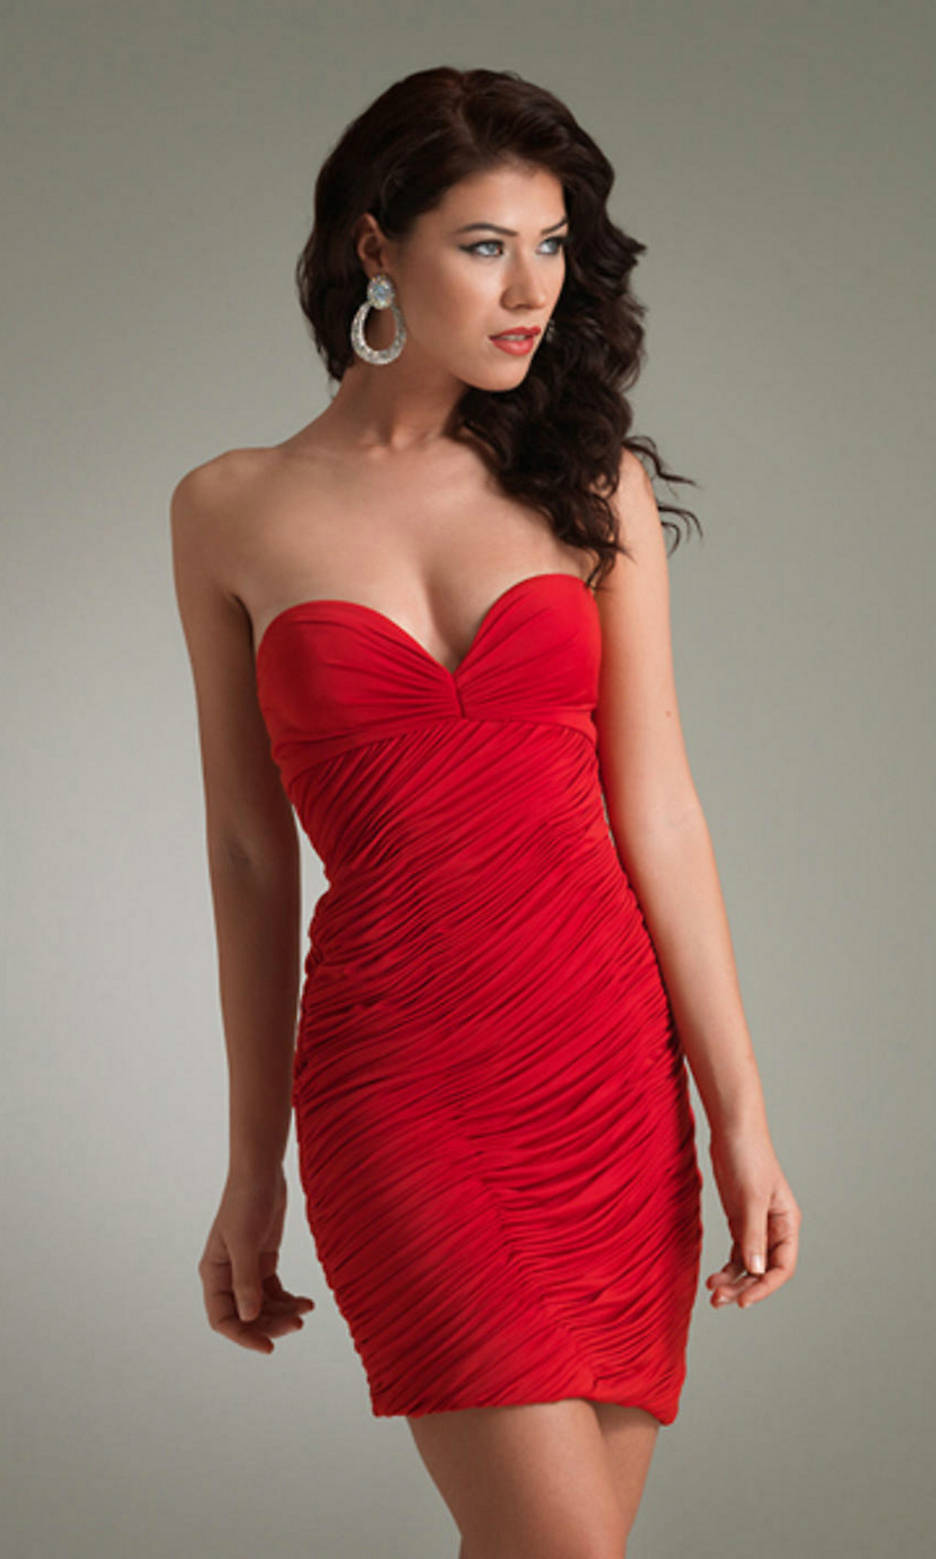 All About The Red Strapless Dress | Red Lace Dress